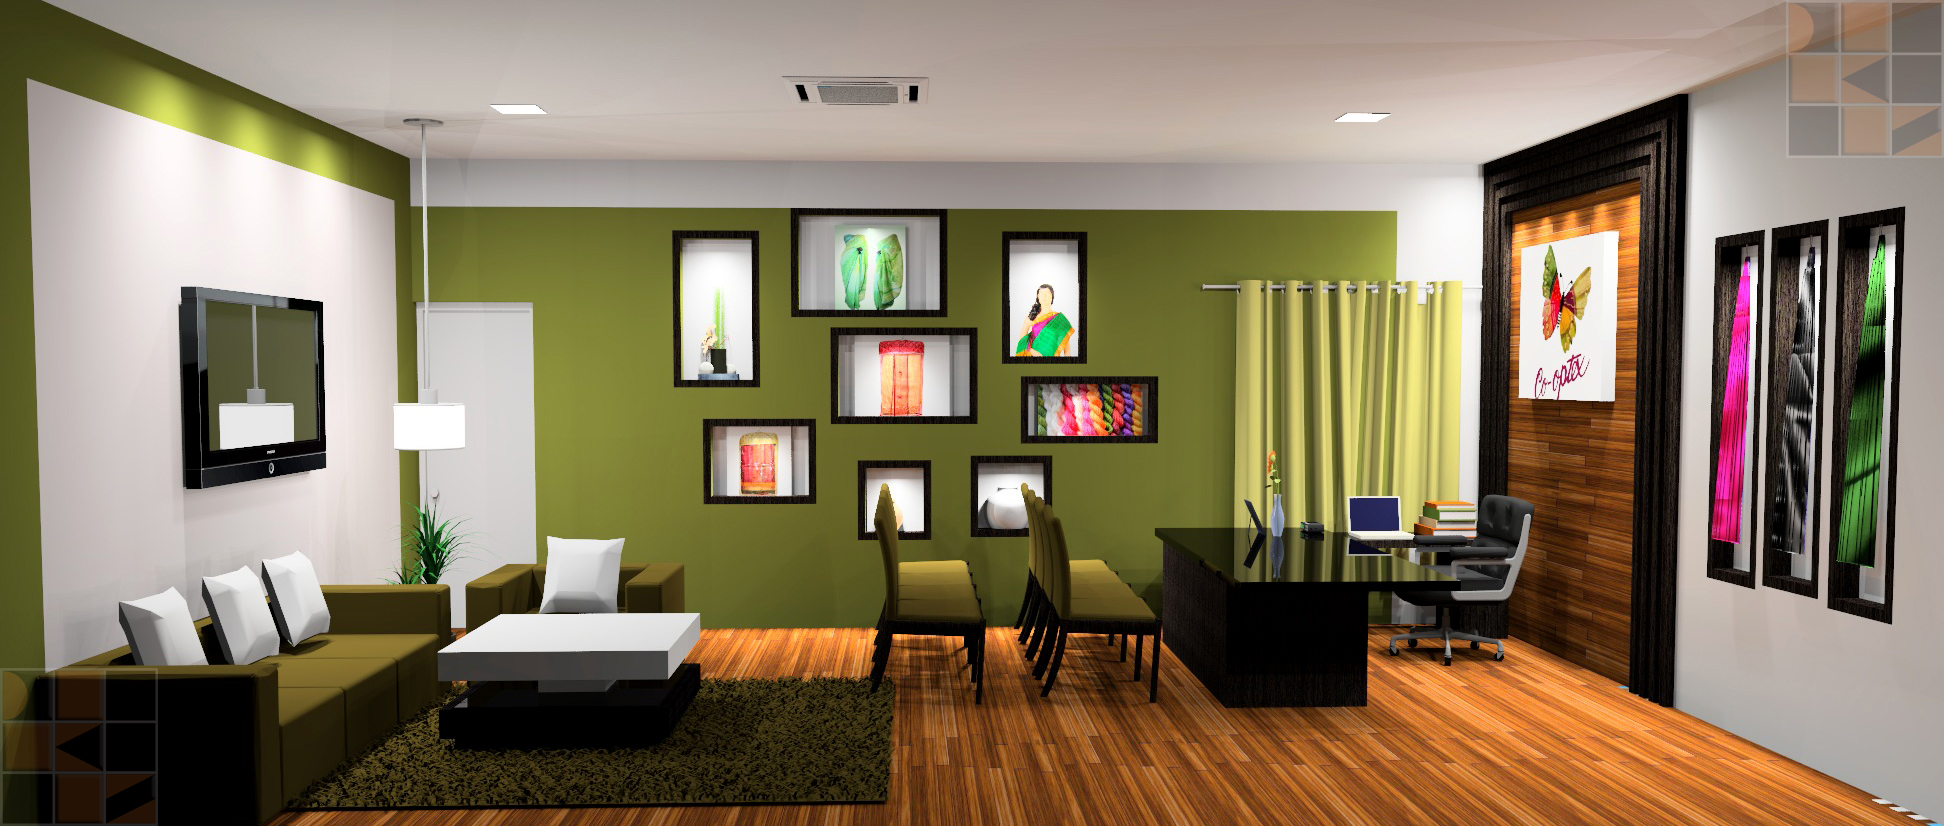 office interior design for cooptex m d s cabin chennai d sign k